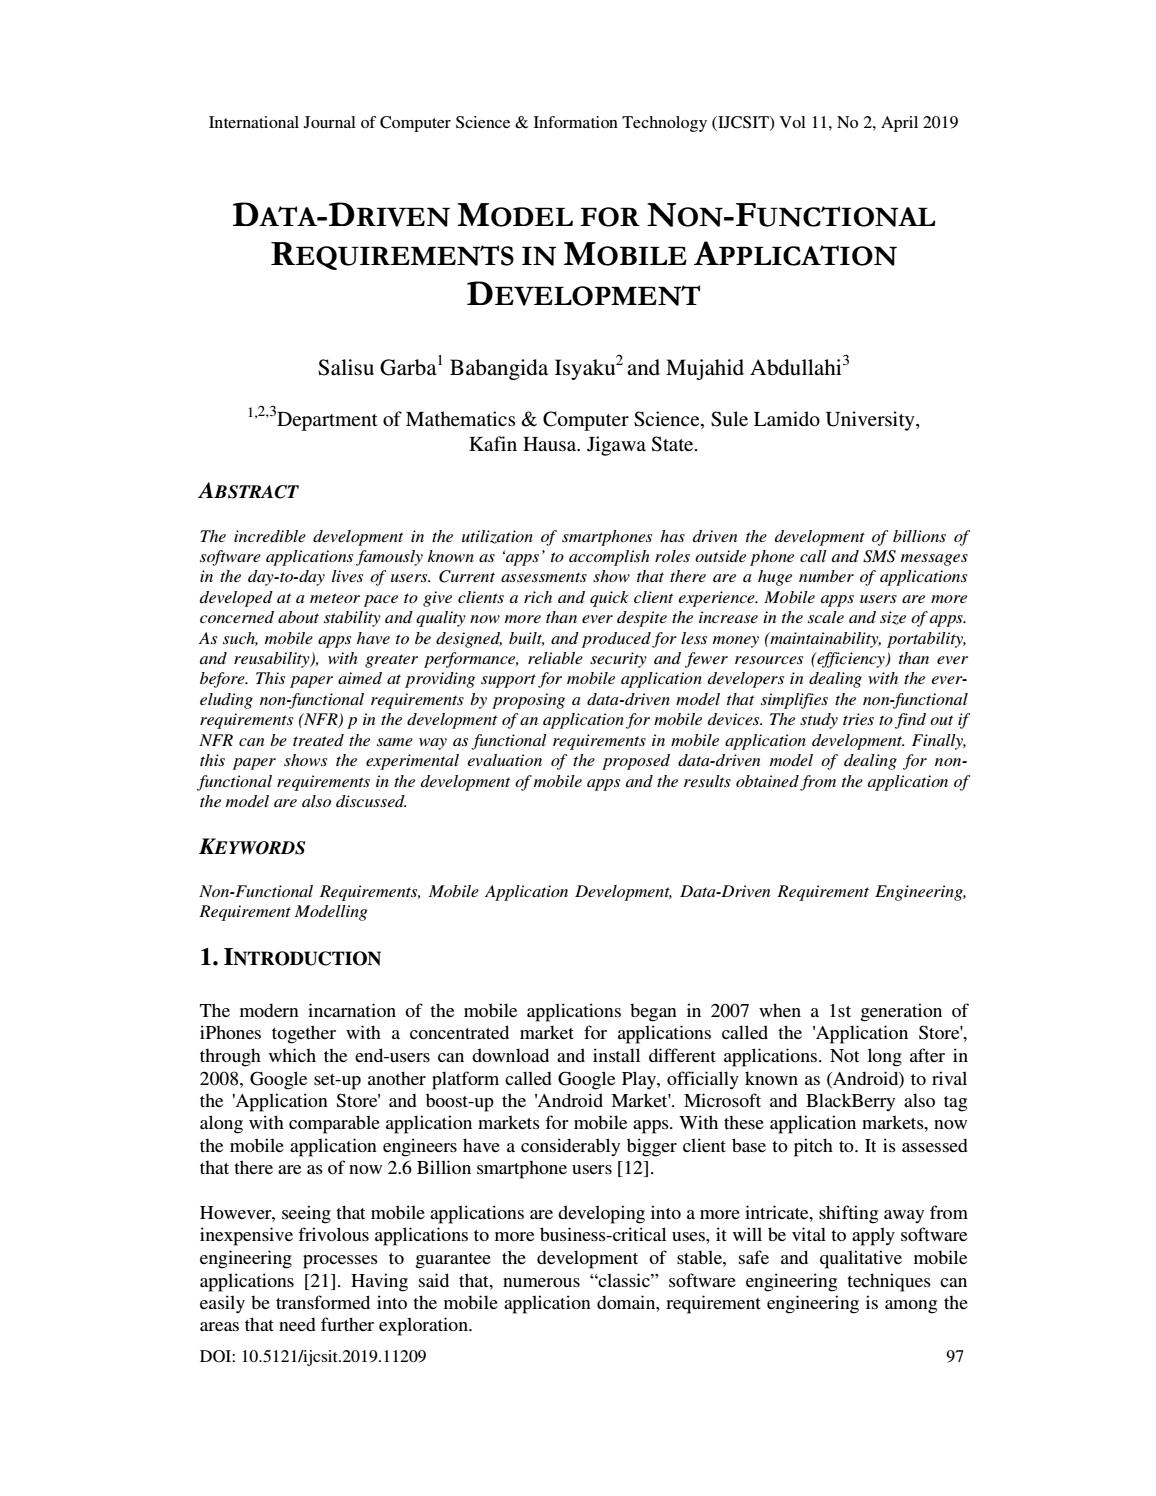 DATA-DRIVEN MODEL FOR NON-FUNCTIONAL REQUIREMENTS IN MOBILE